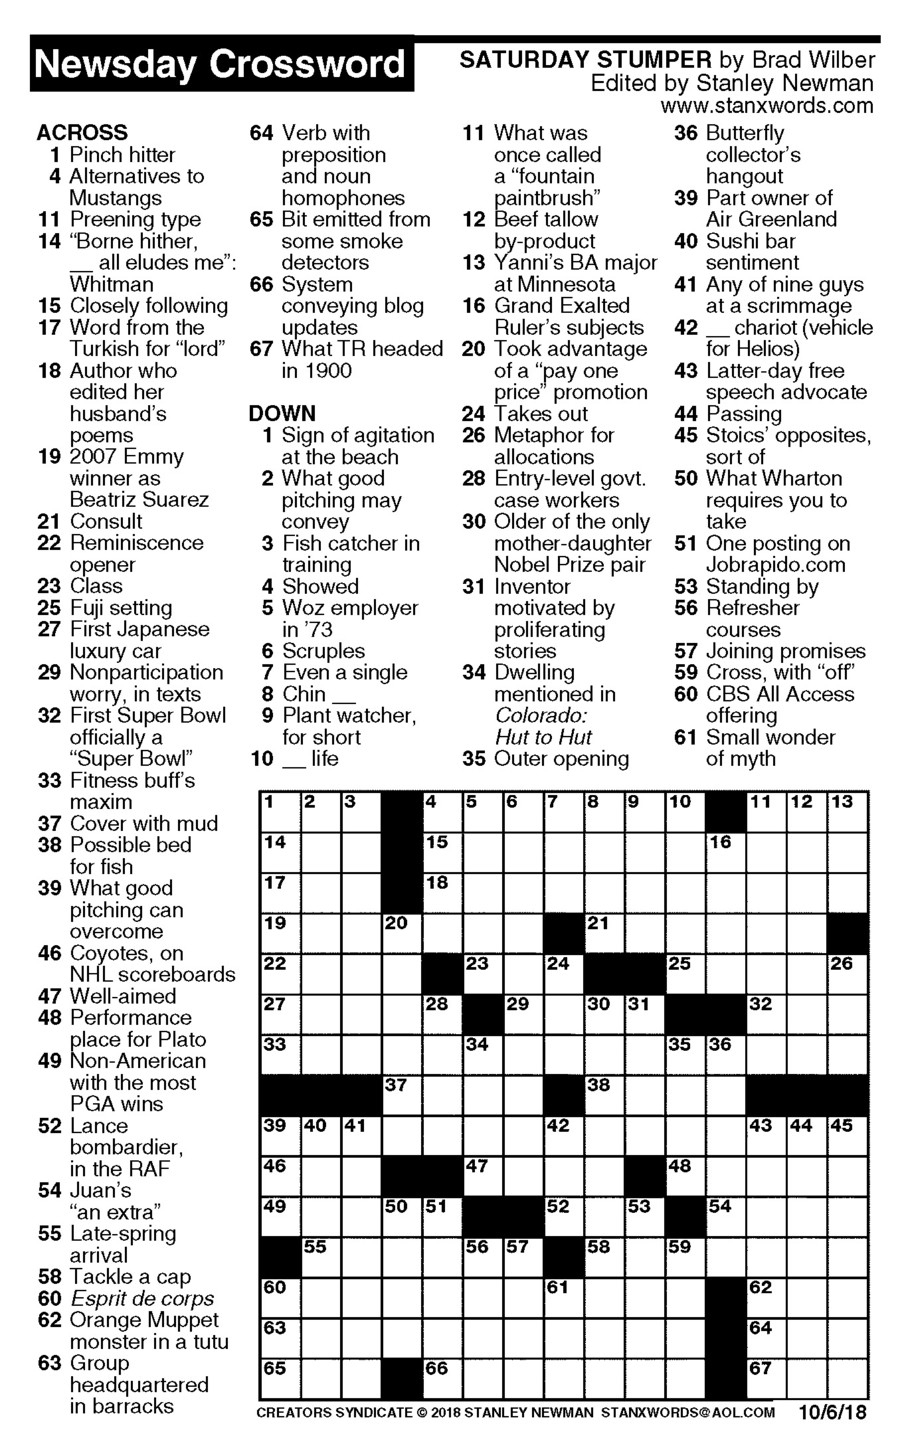 Newsday Crossword Puzzle For Oct 06, 2018,stanley Newman - Printable Crossword Newsday